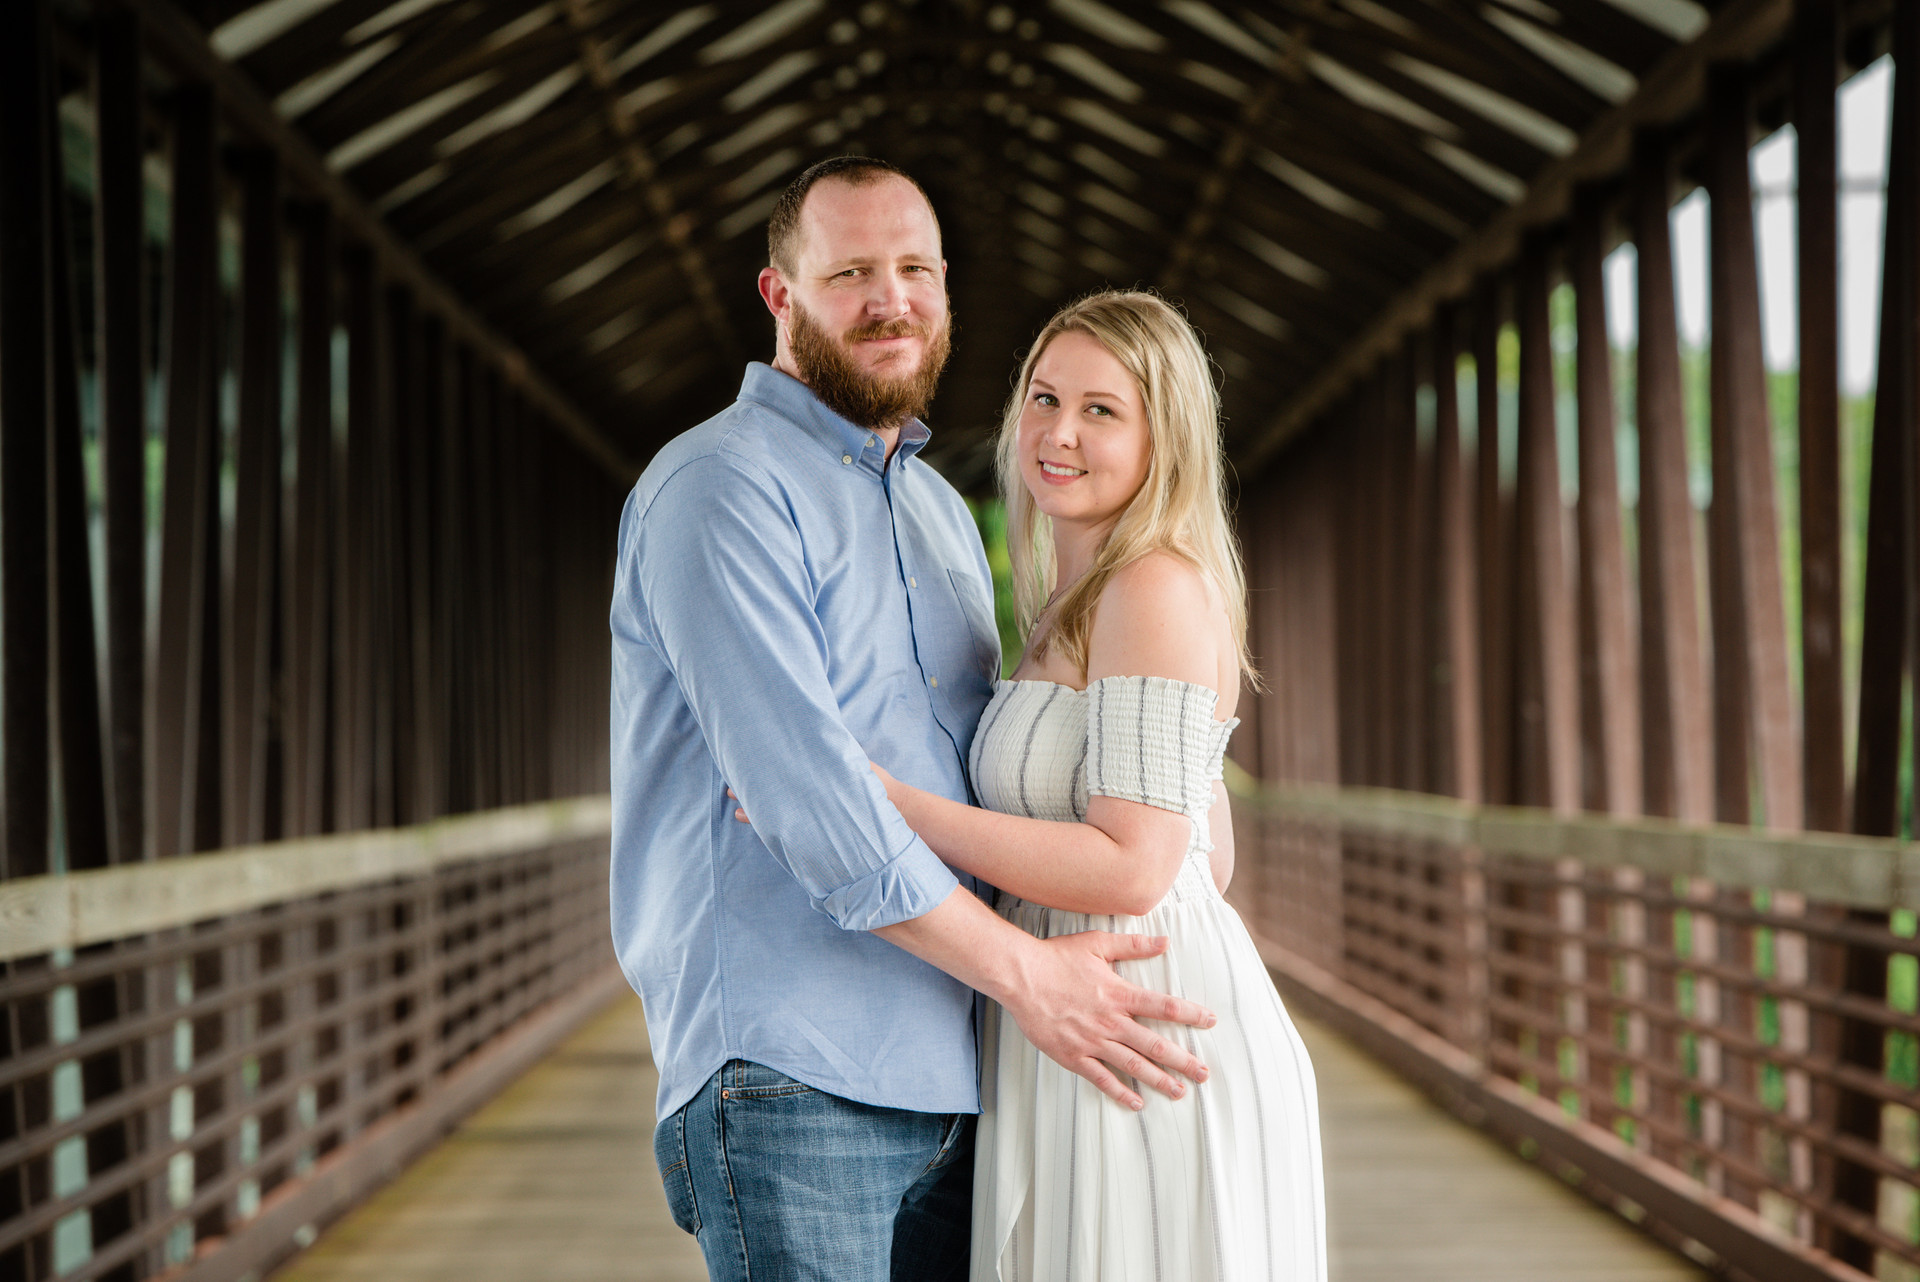 Jessica M. Photography Engagement Photographer St. Charles IL